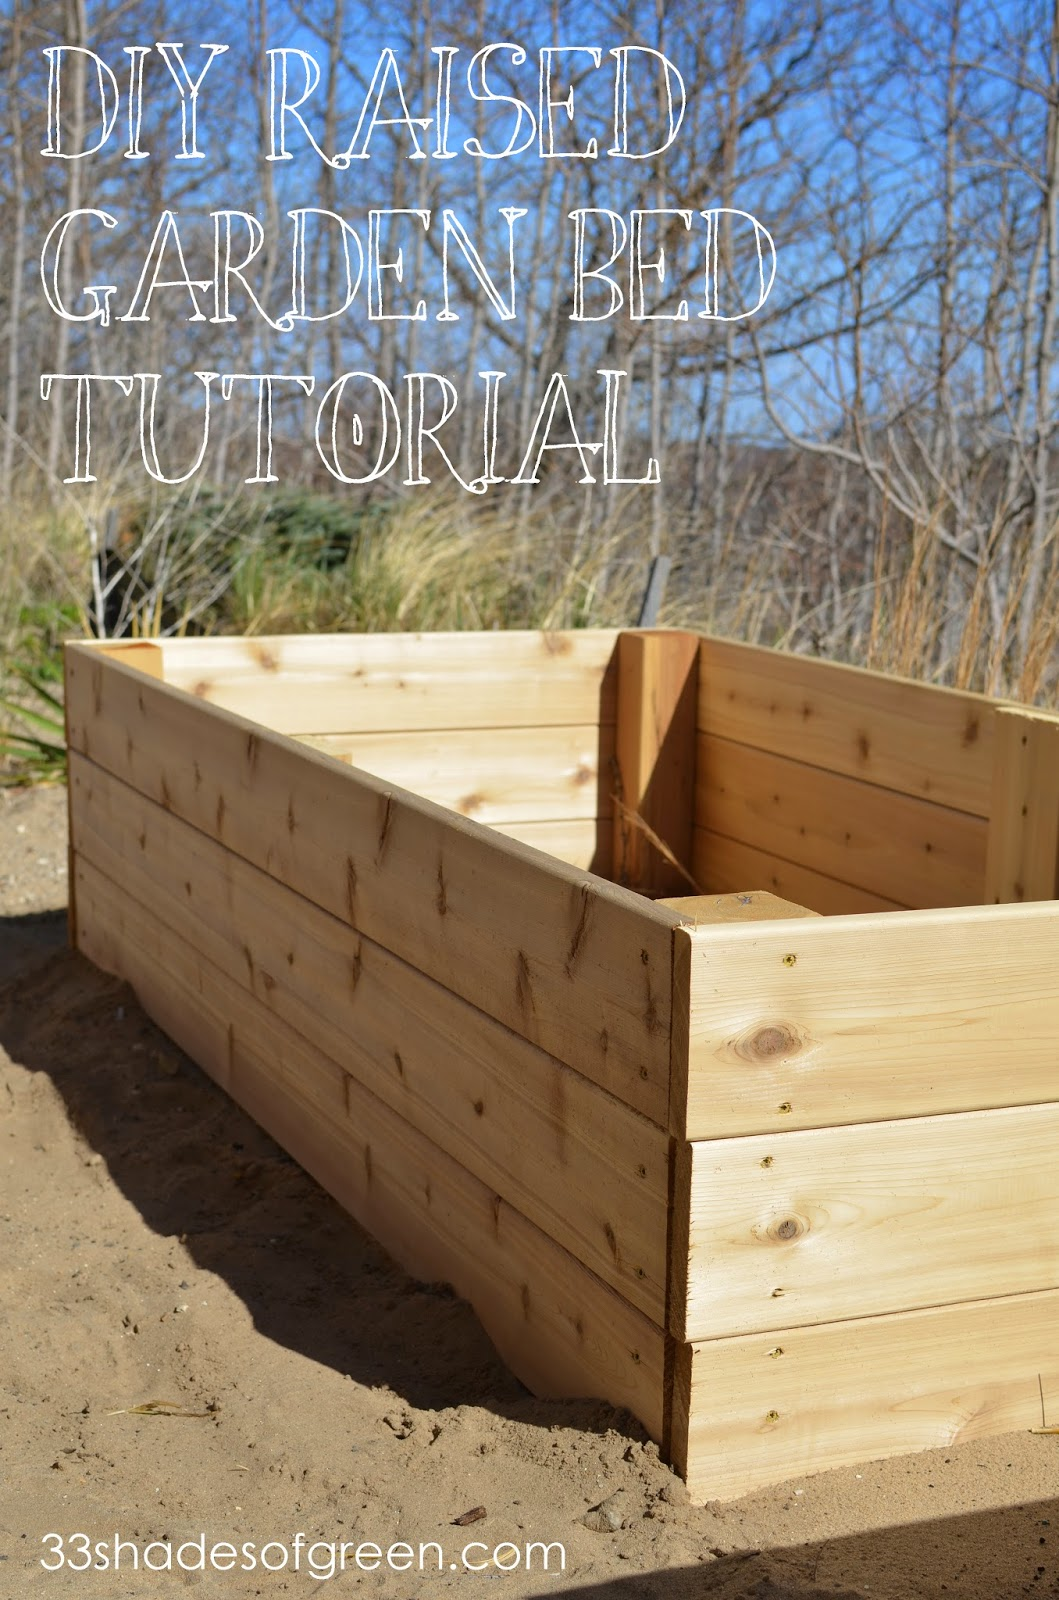 bed diy tower pin ideas cinder instructions garden than raised and more plans from to free wood build a block